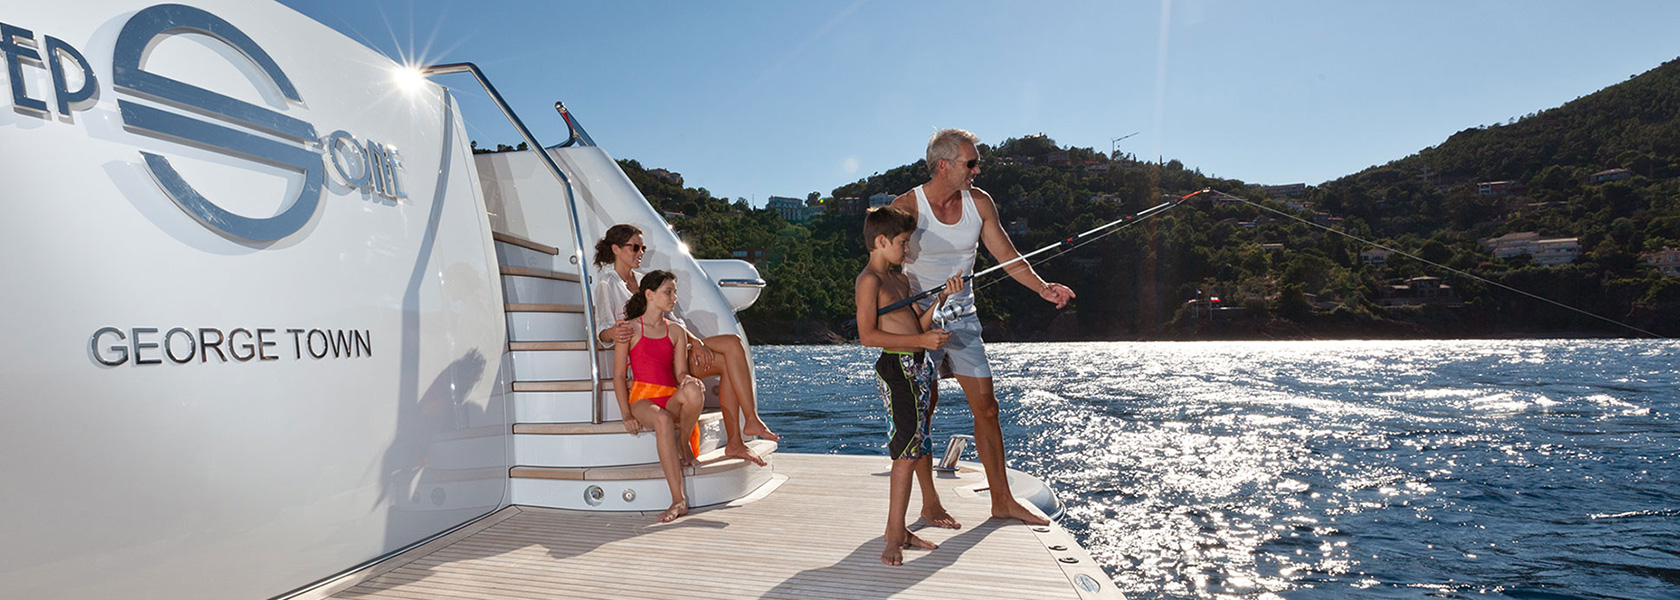 Family vacations on luxury yachts